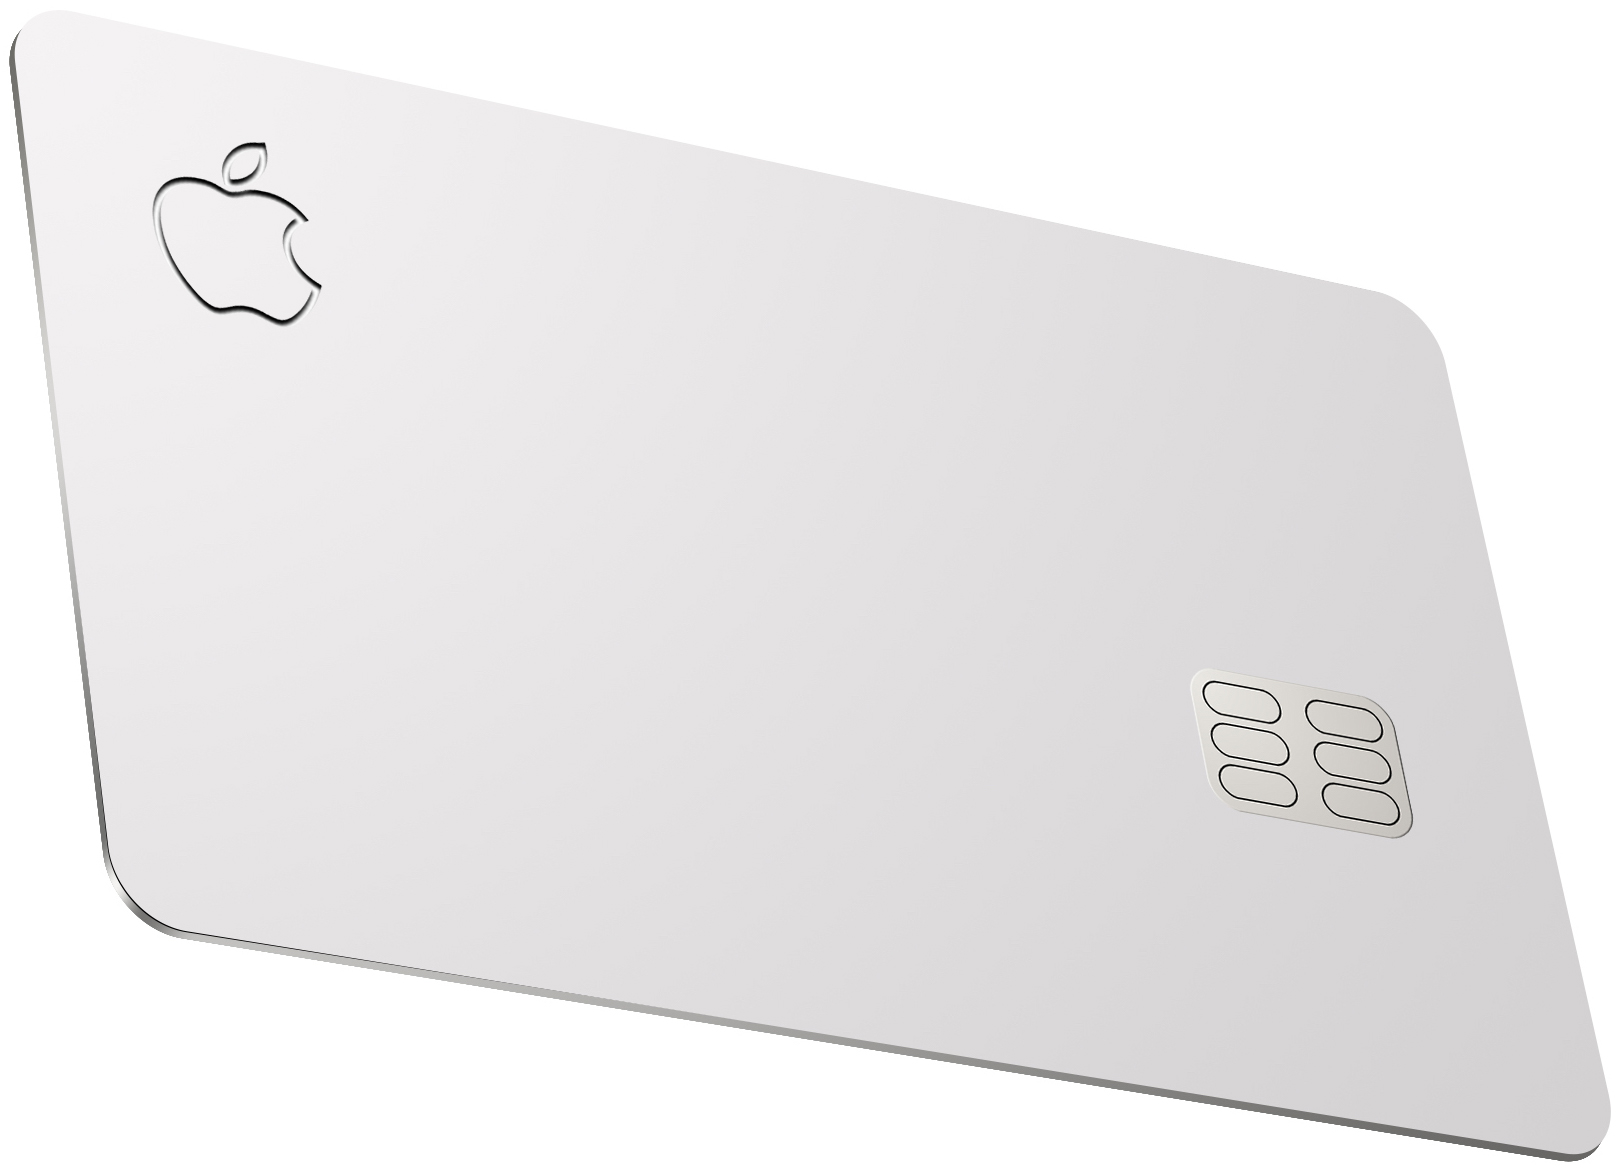 Apple warns against storing the Apple Card in leather and denim